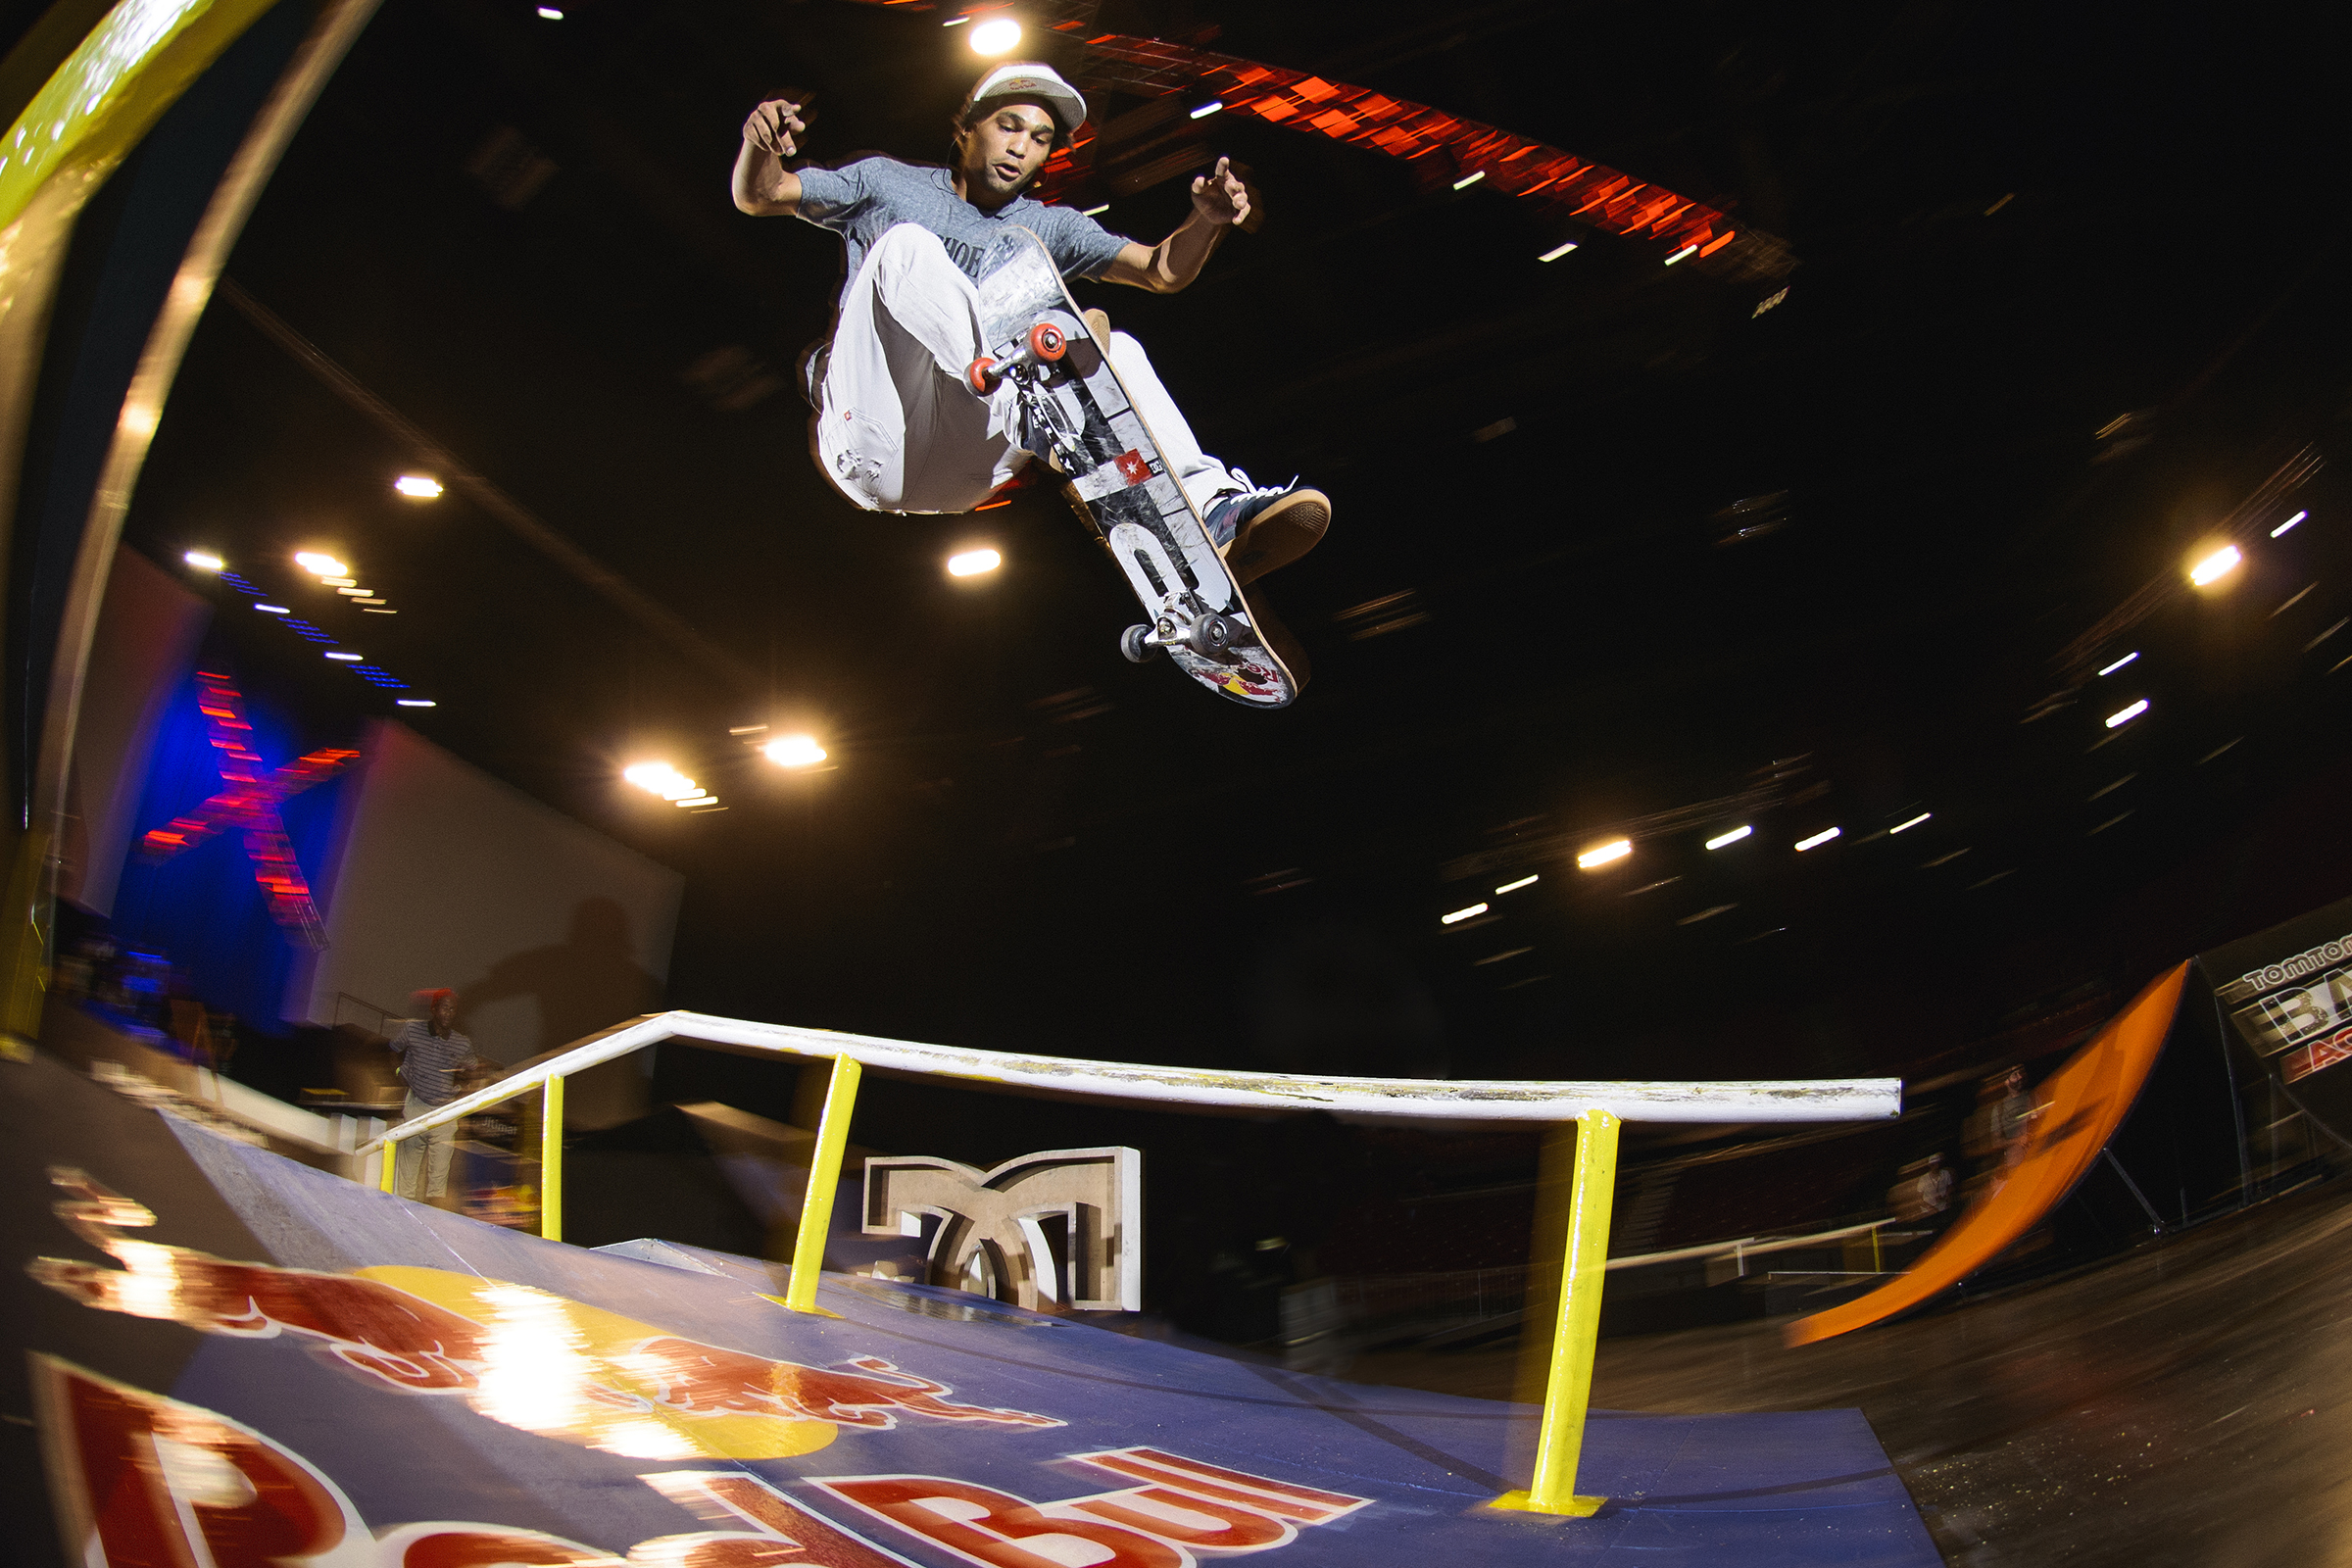 Moses Adams during the Ultimate X 2016 Skate final